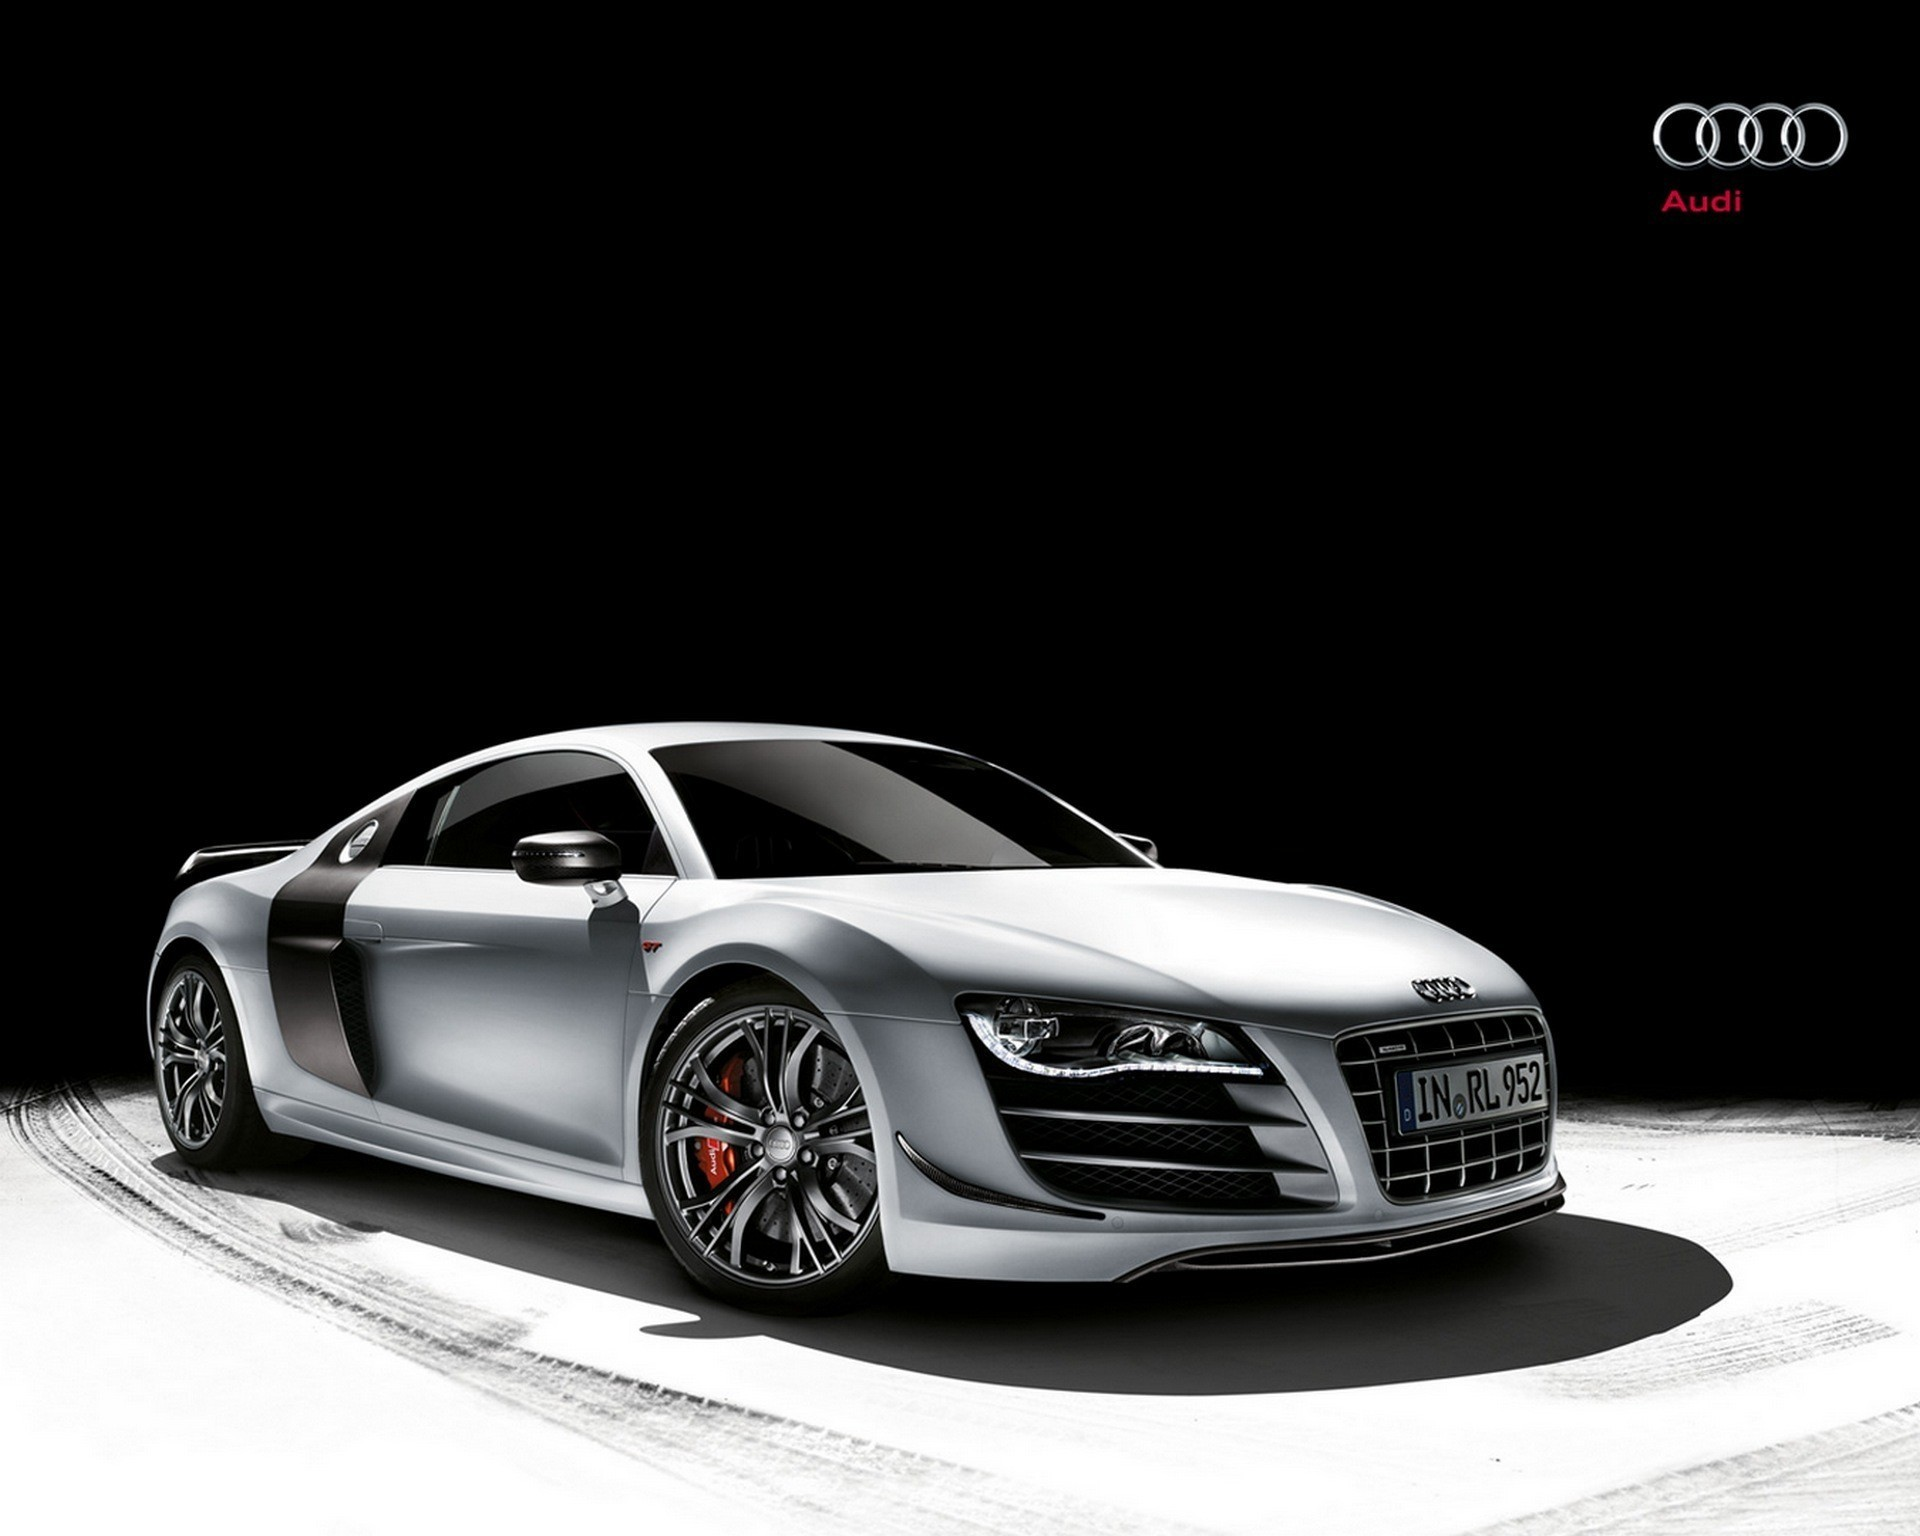 cars Audi Supercars audi HD Wallpaper